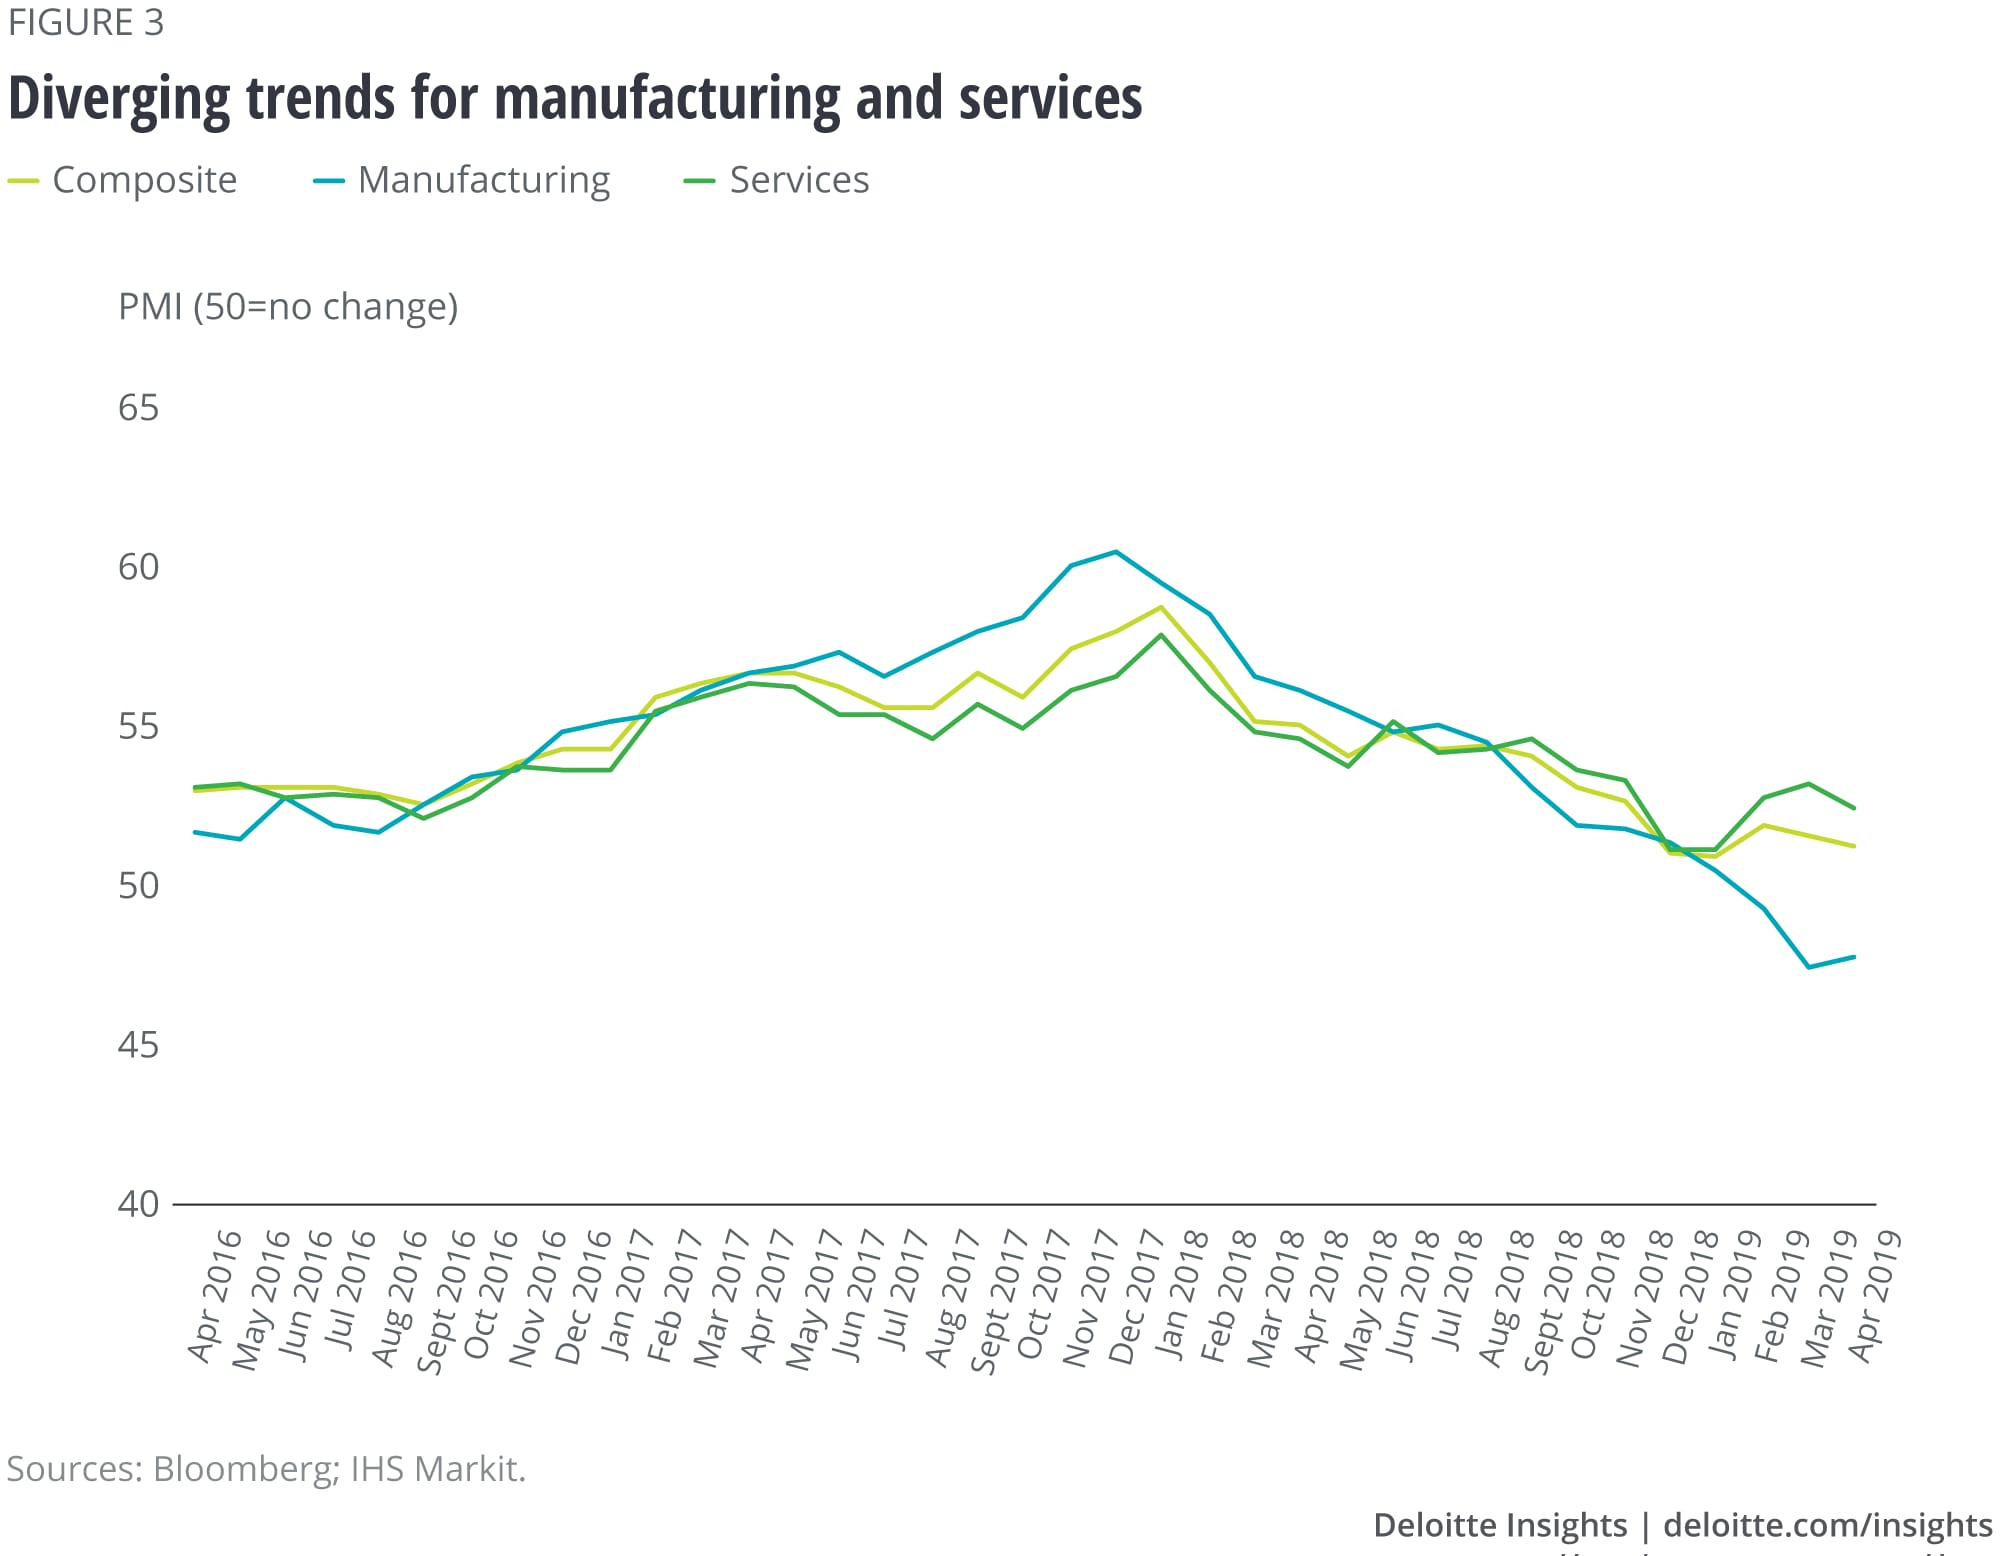 Diverging trends for manufacturing and services